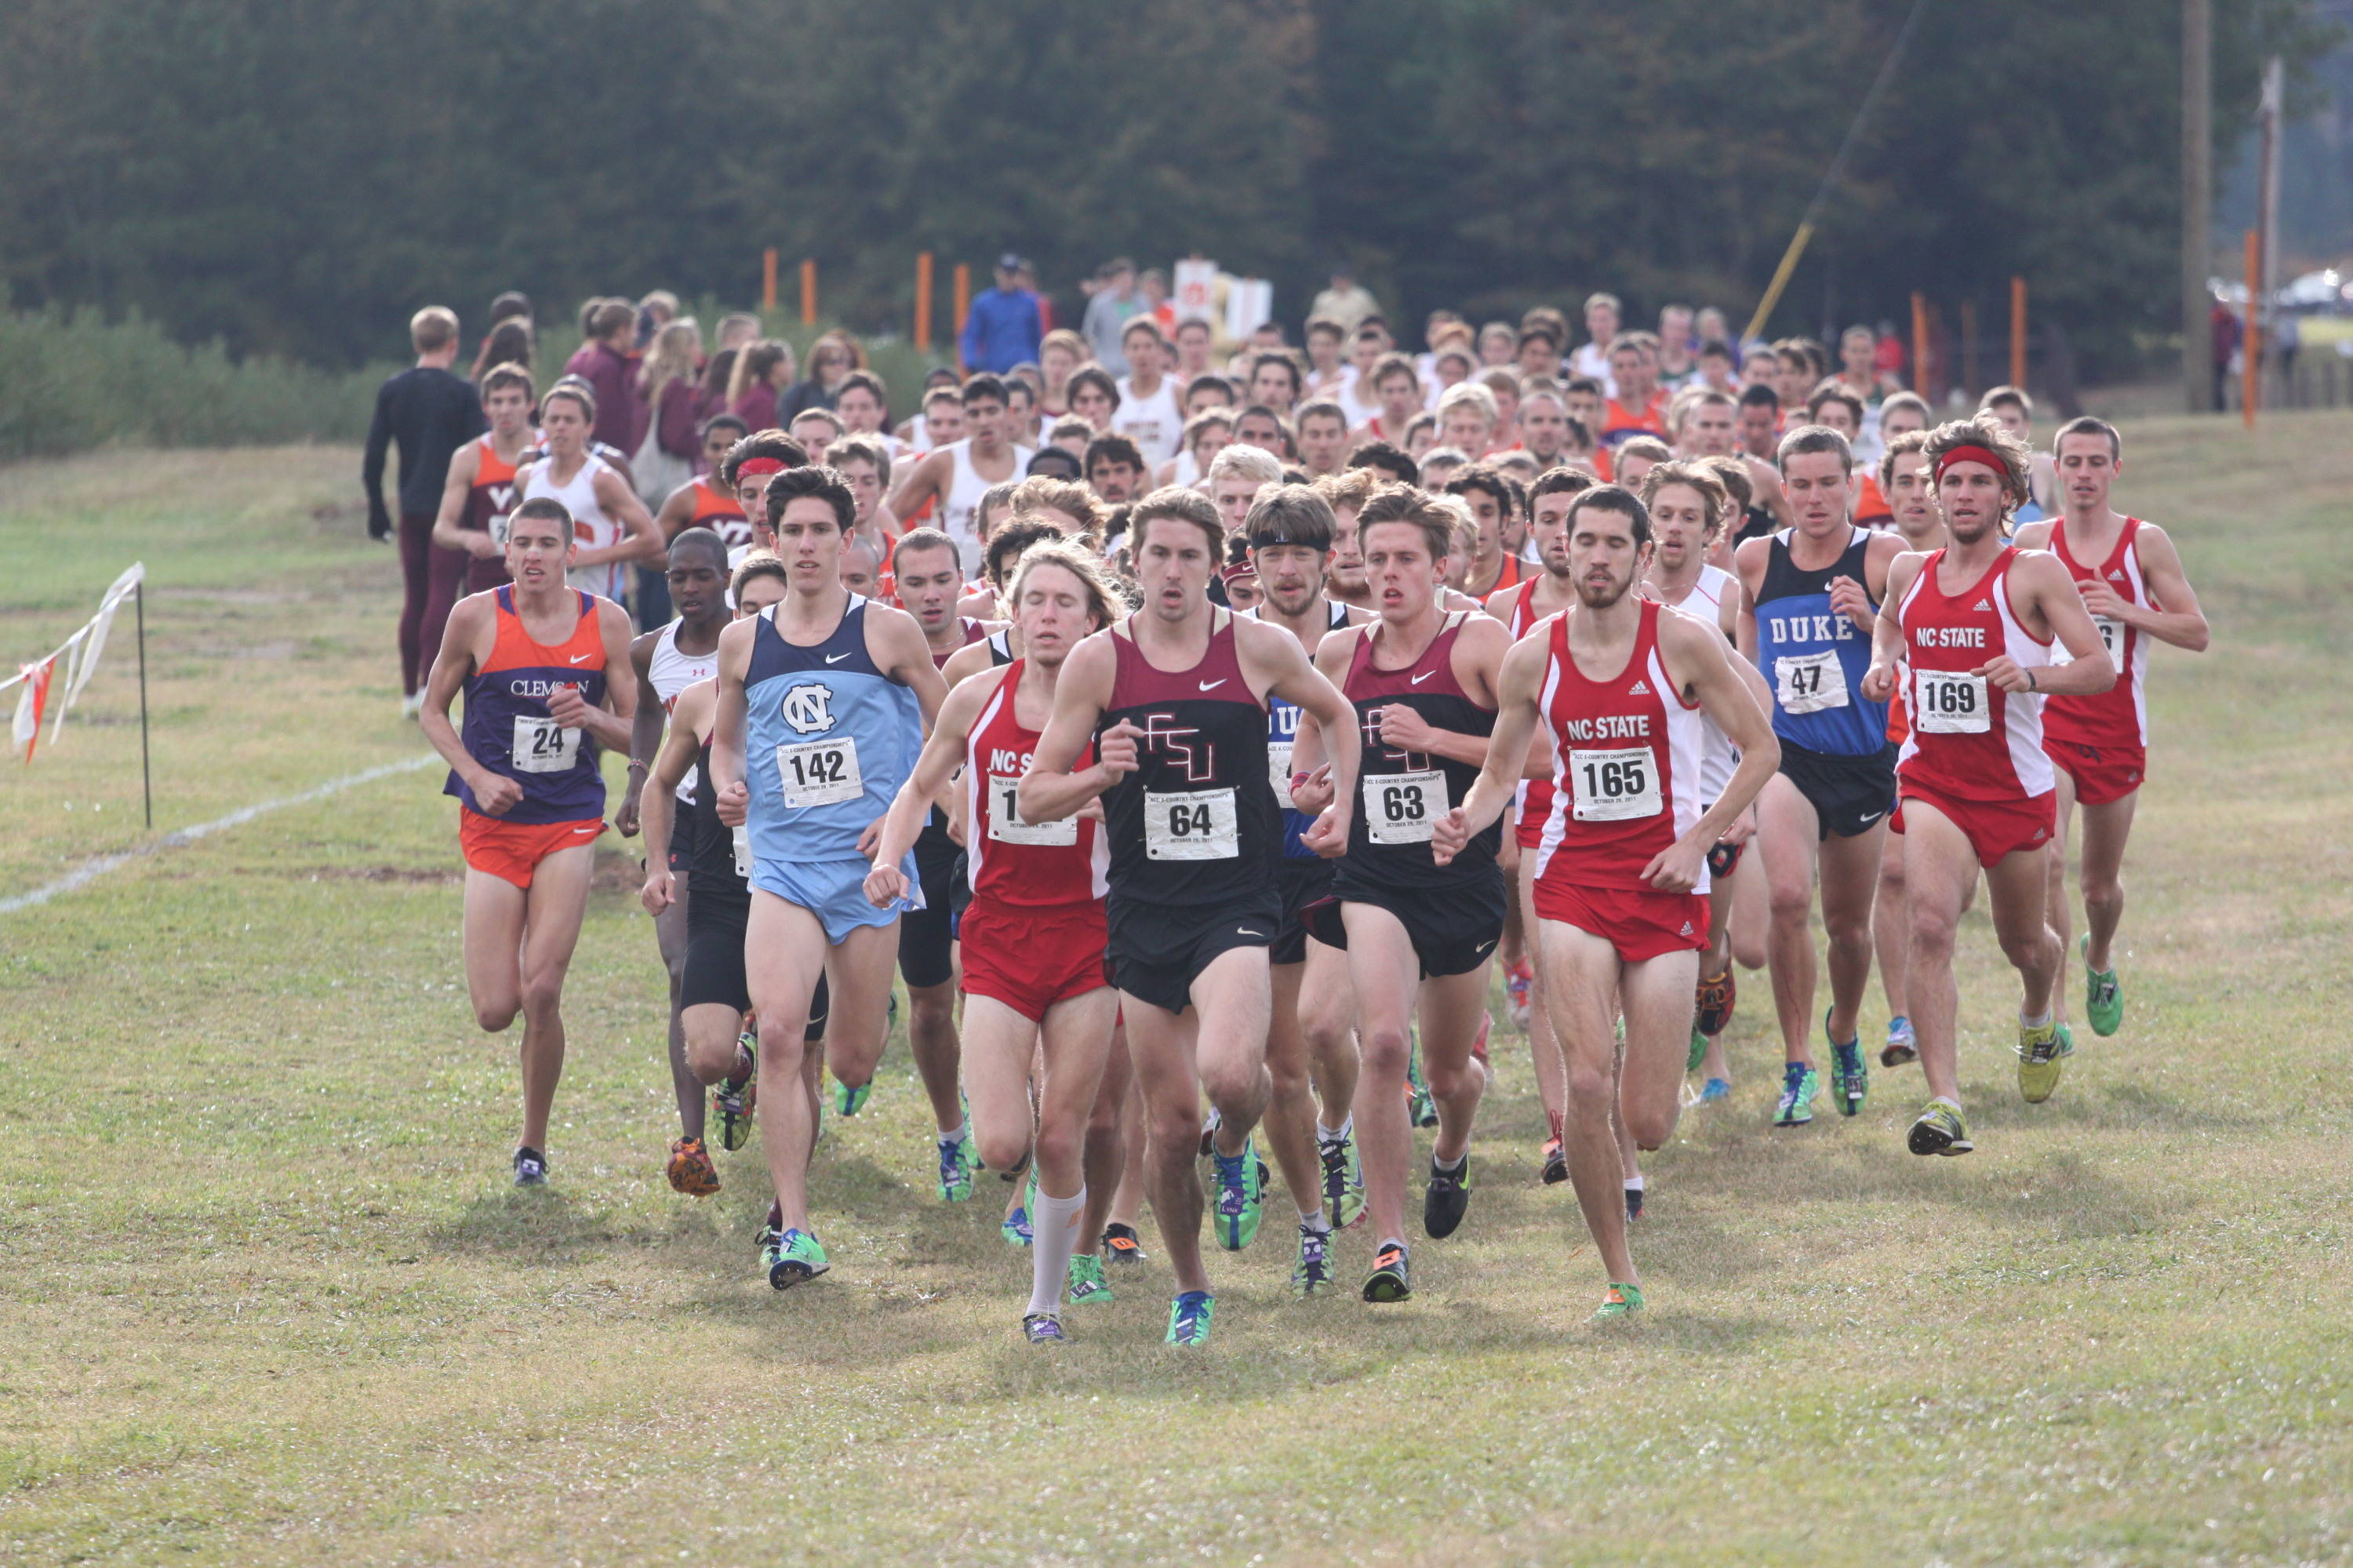 Mike Fout leads the way early at the 2011 ACC XC Championships